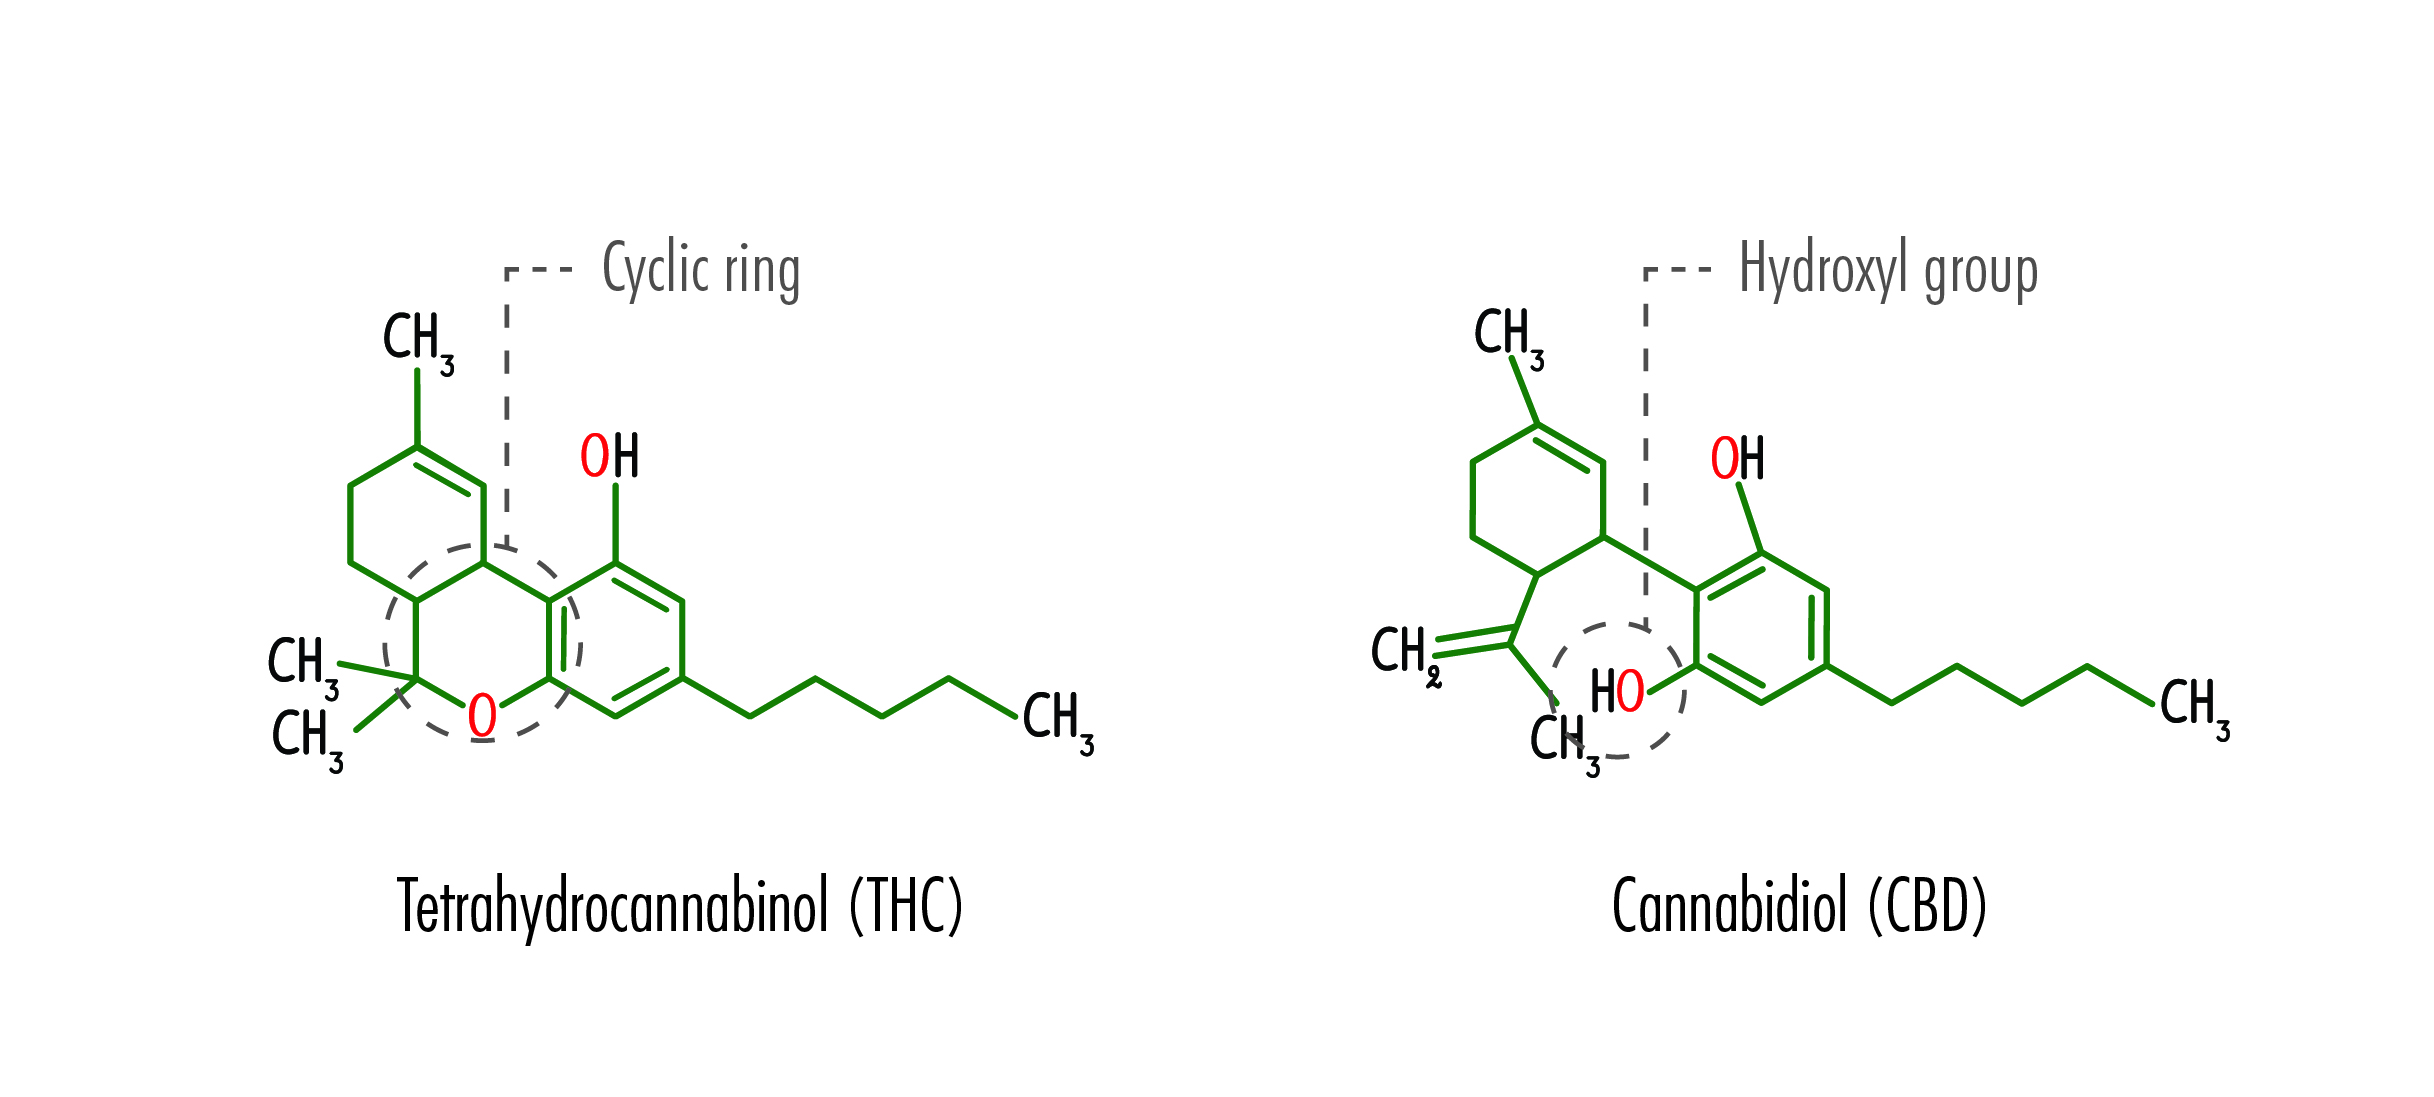 Cbd Vs Thc What Are The Main Differences